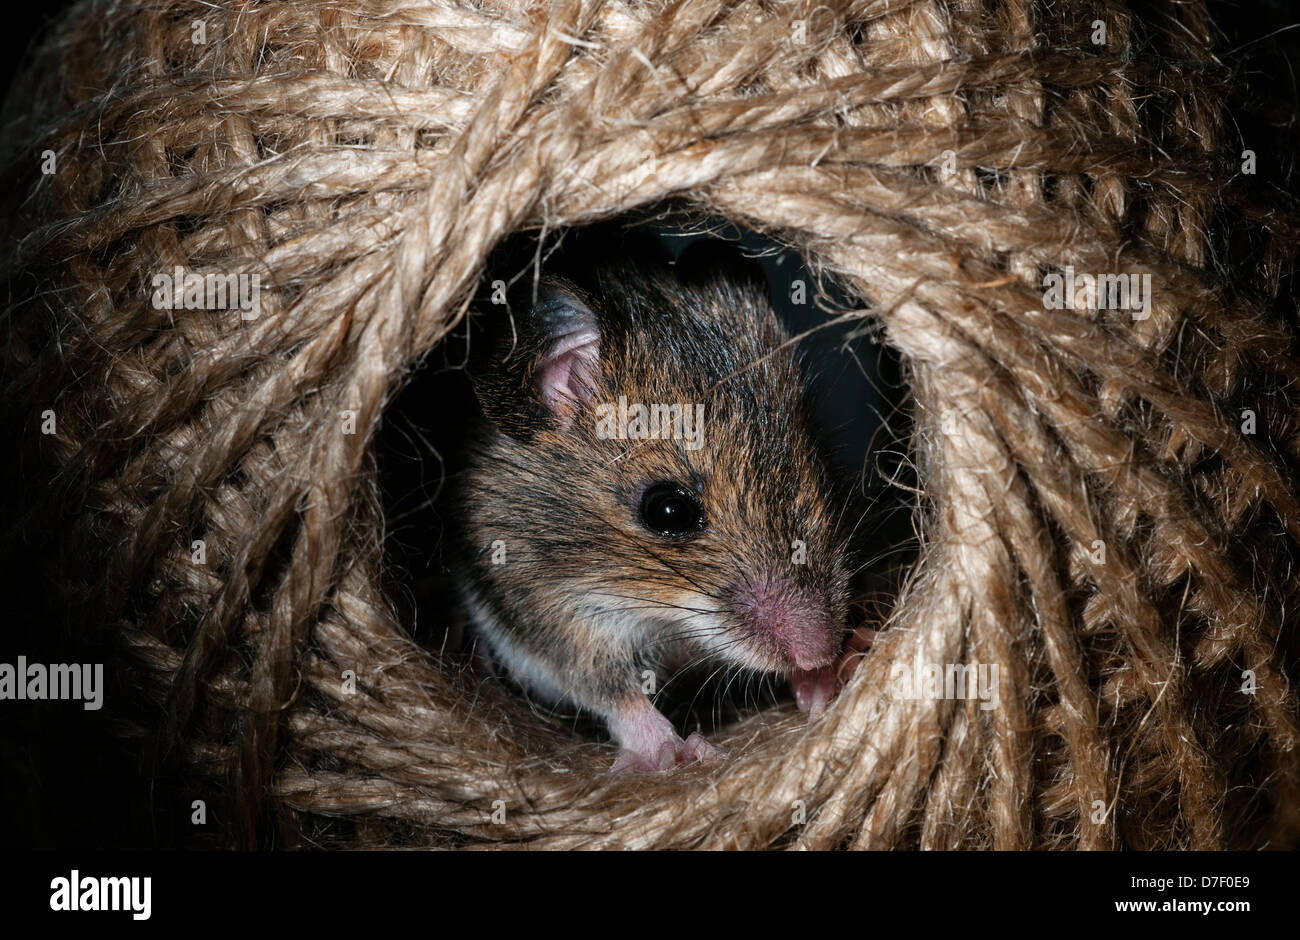 Wood mouse hiding in a ball of string - Stock Image